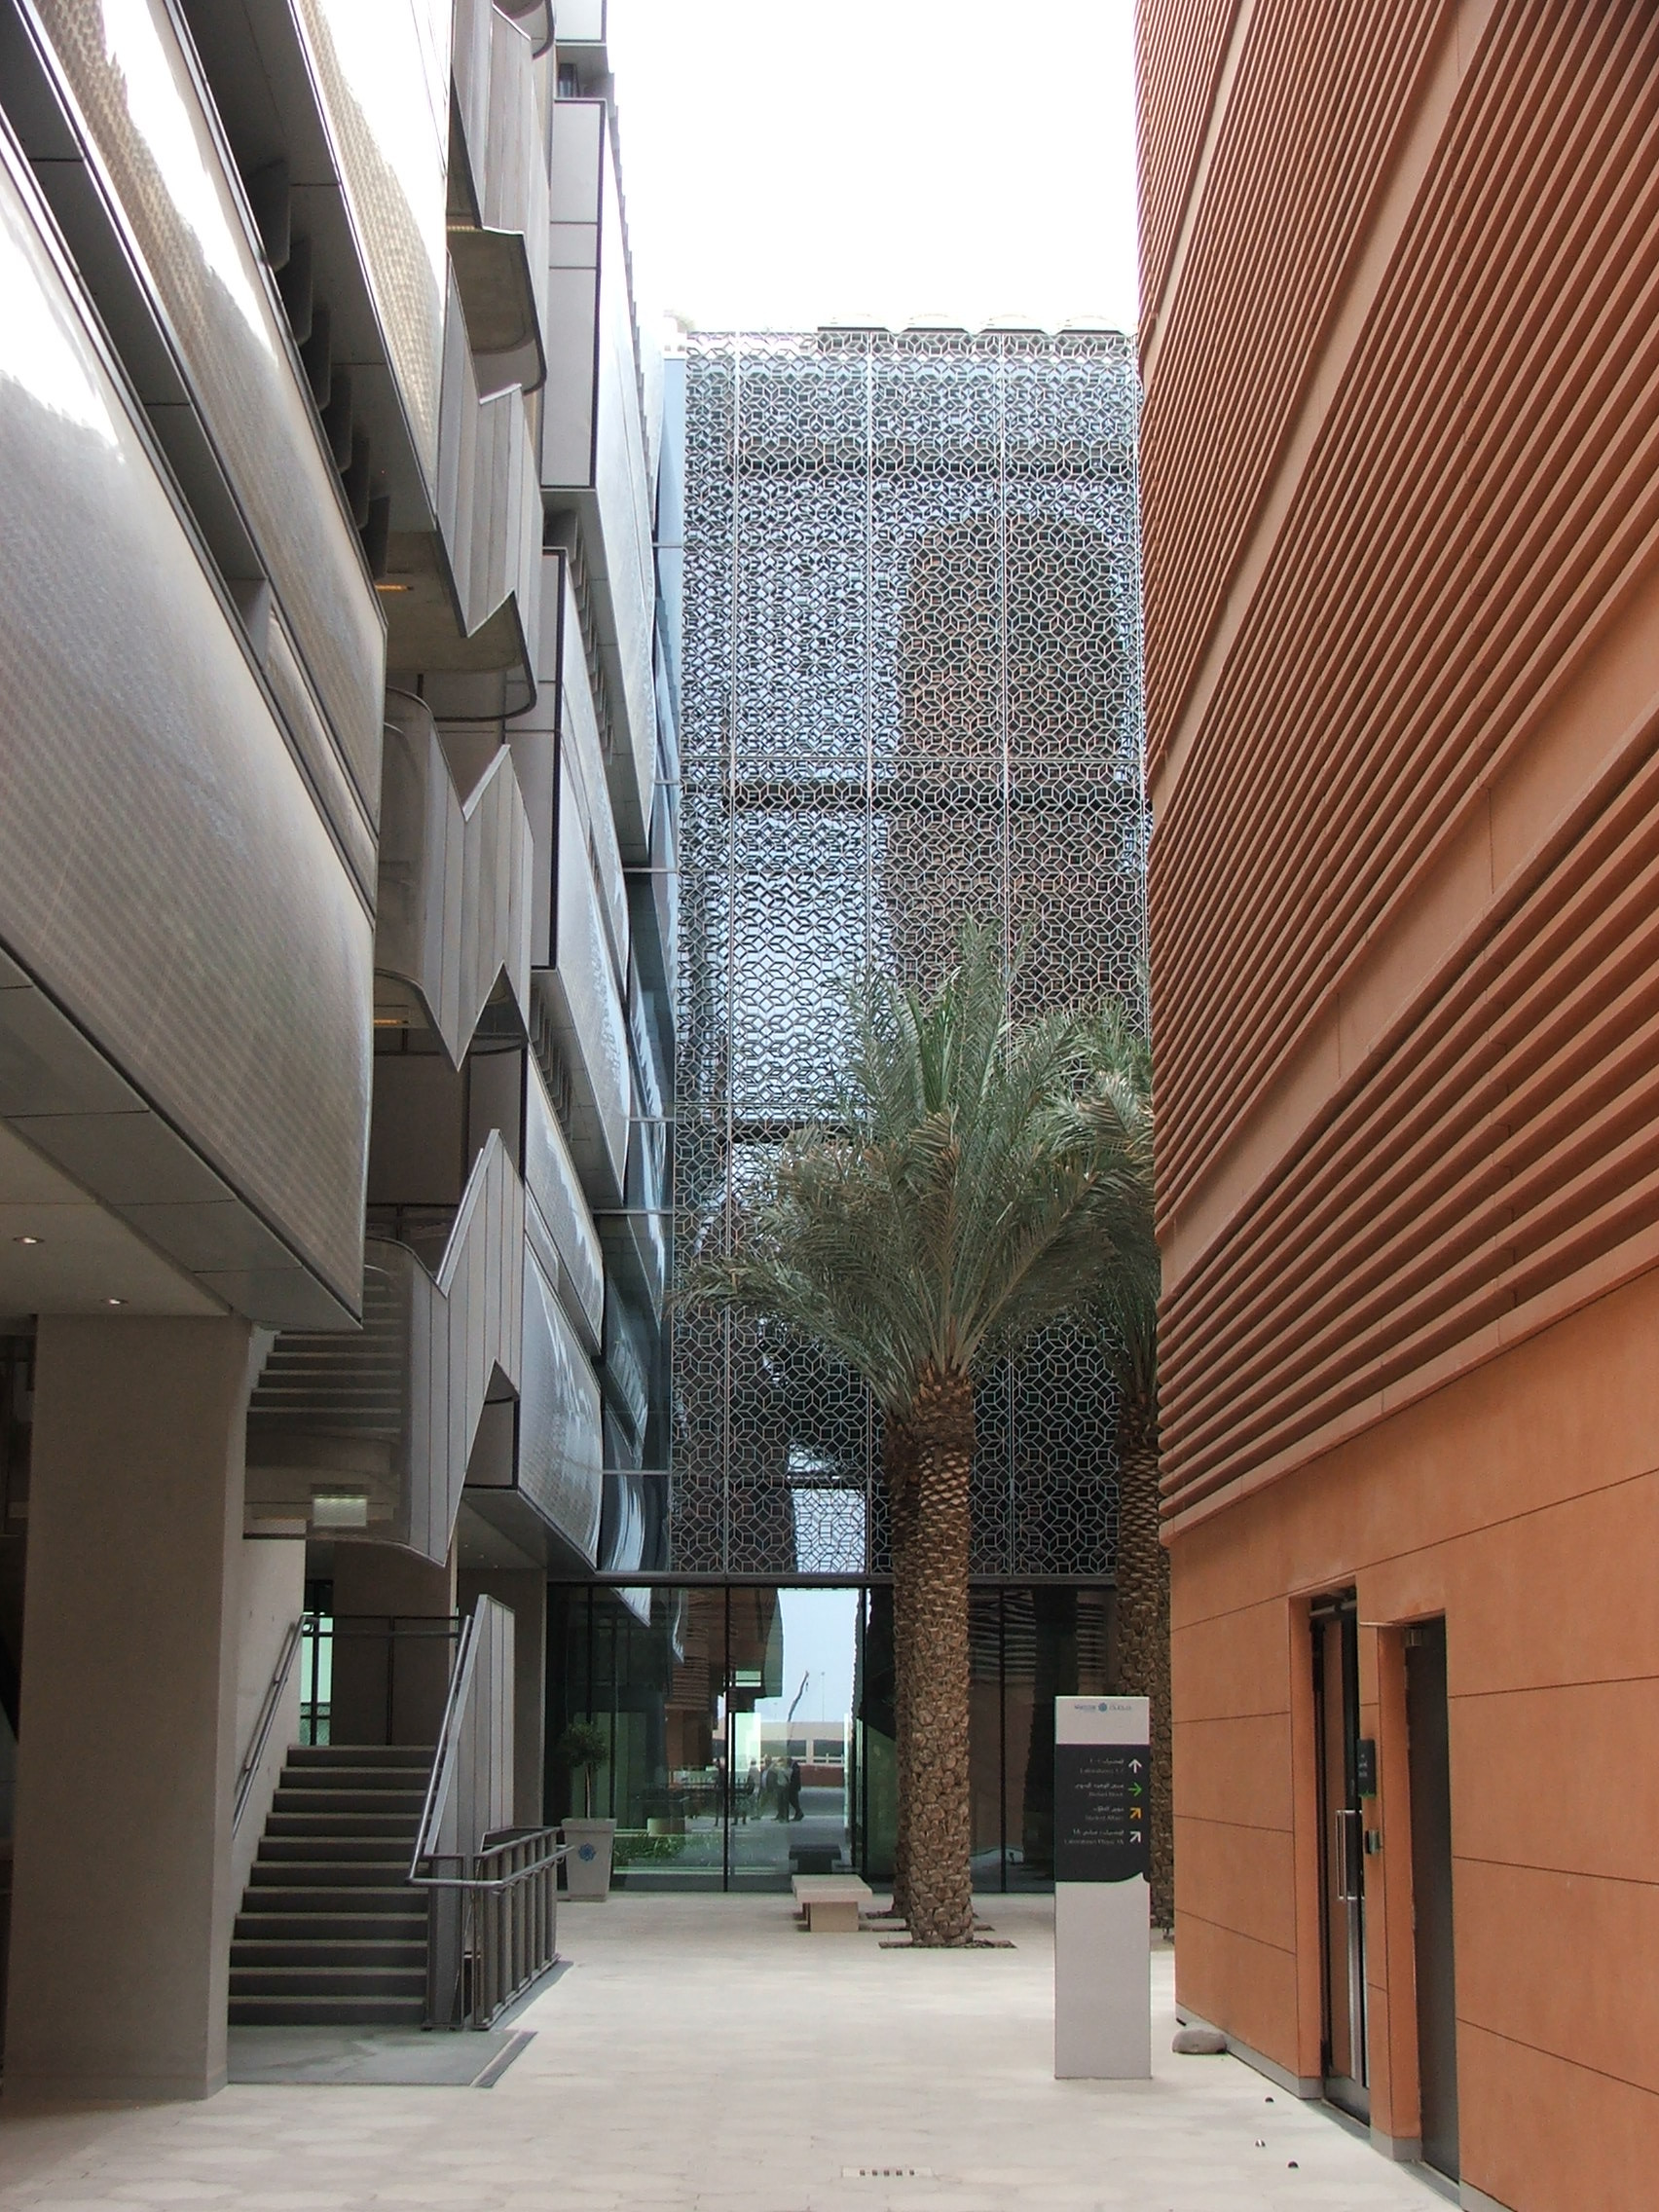 Gallery of Inside Masdar City - 2